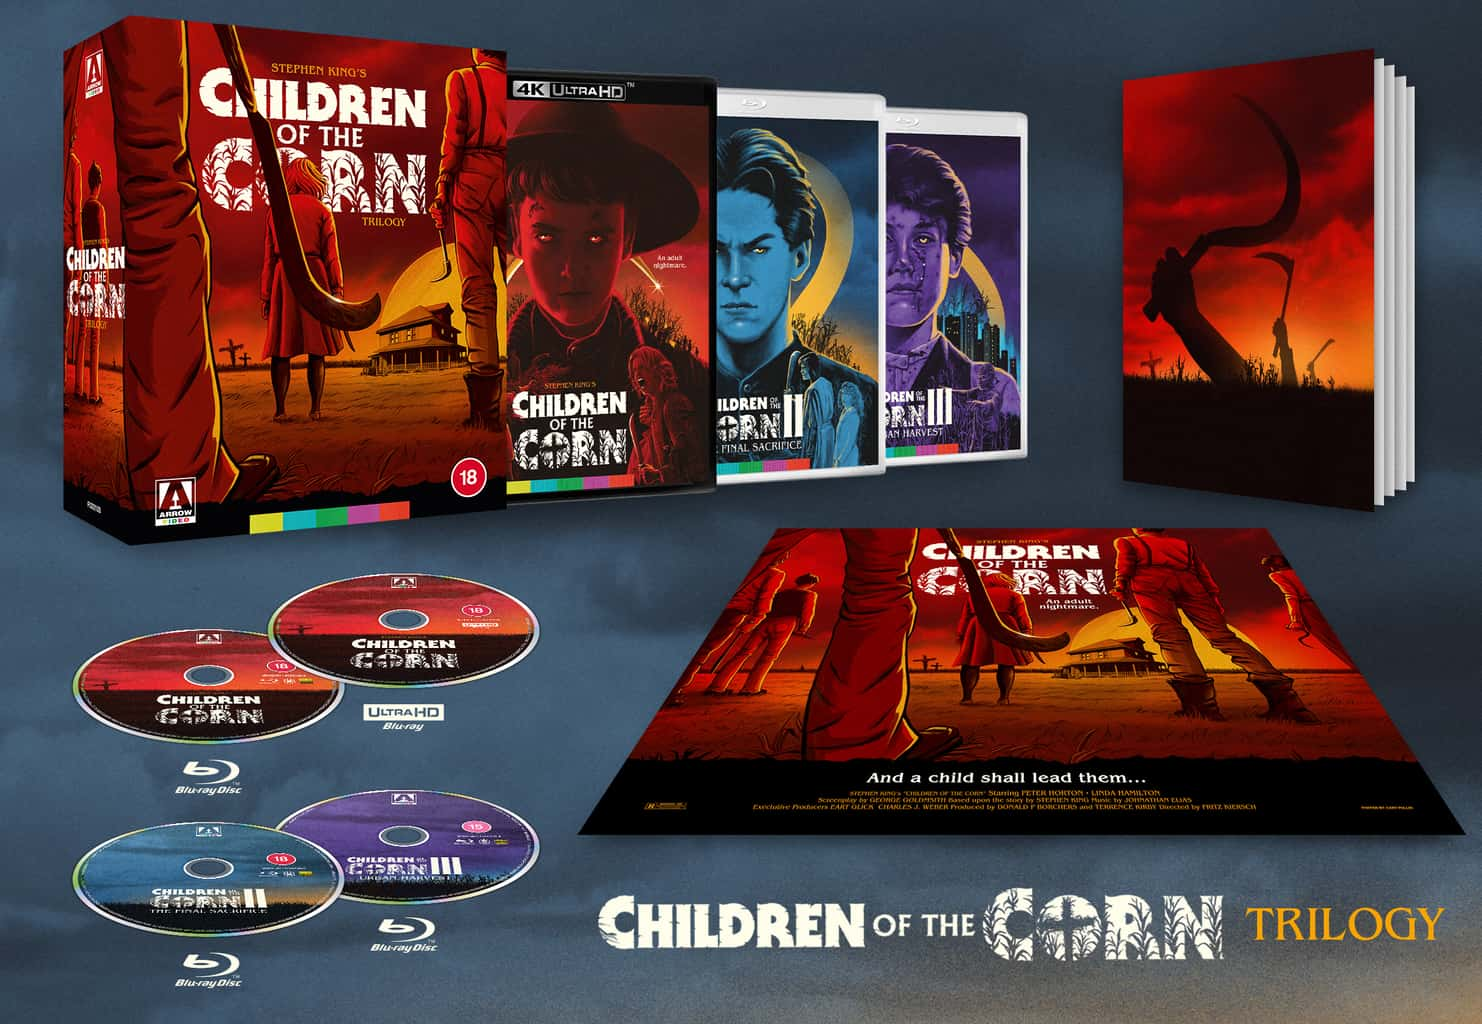 Children of the Corn Trilogy is released on Limited Edition Blu-ray Boxset + Children of the Corn on UHD on 27th September